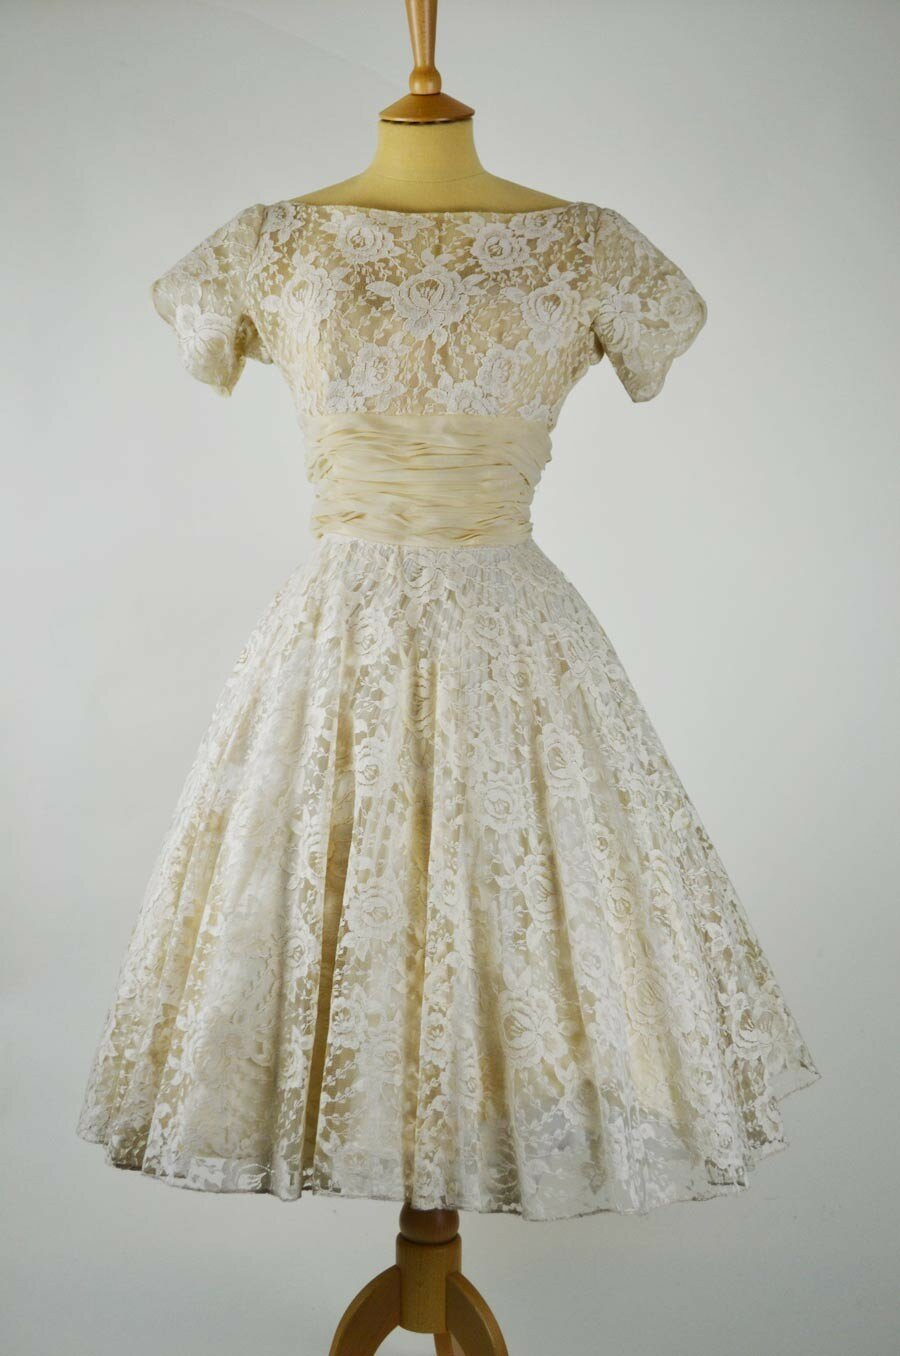 Vintage wedding dresses patterns photo - 3